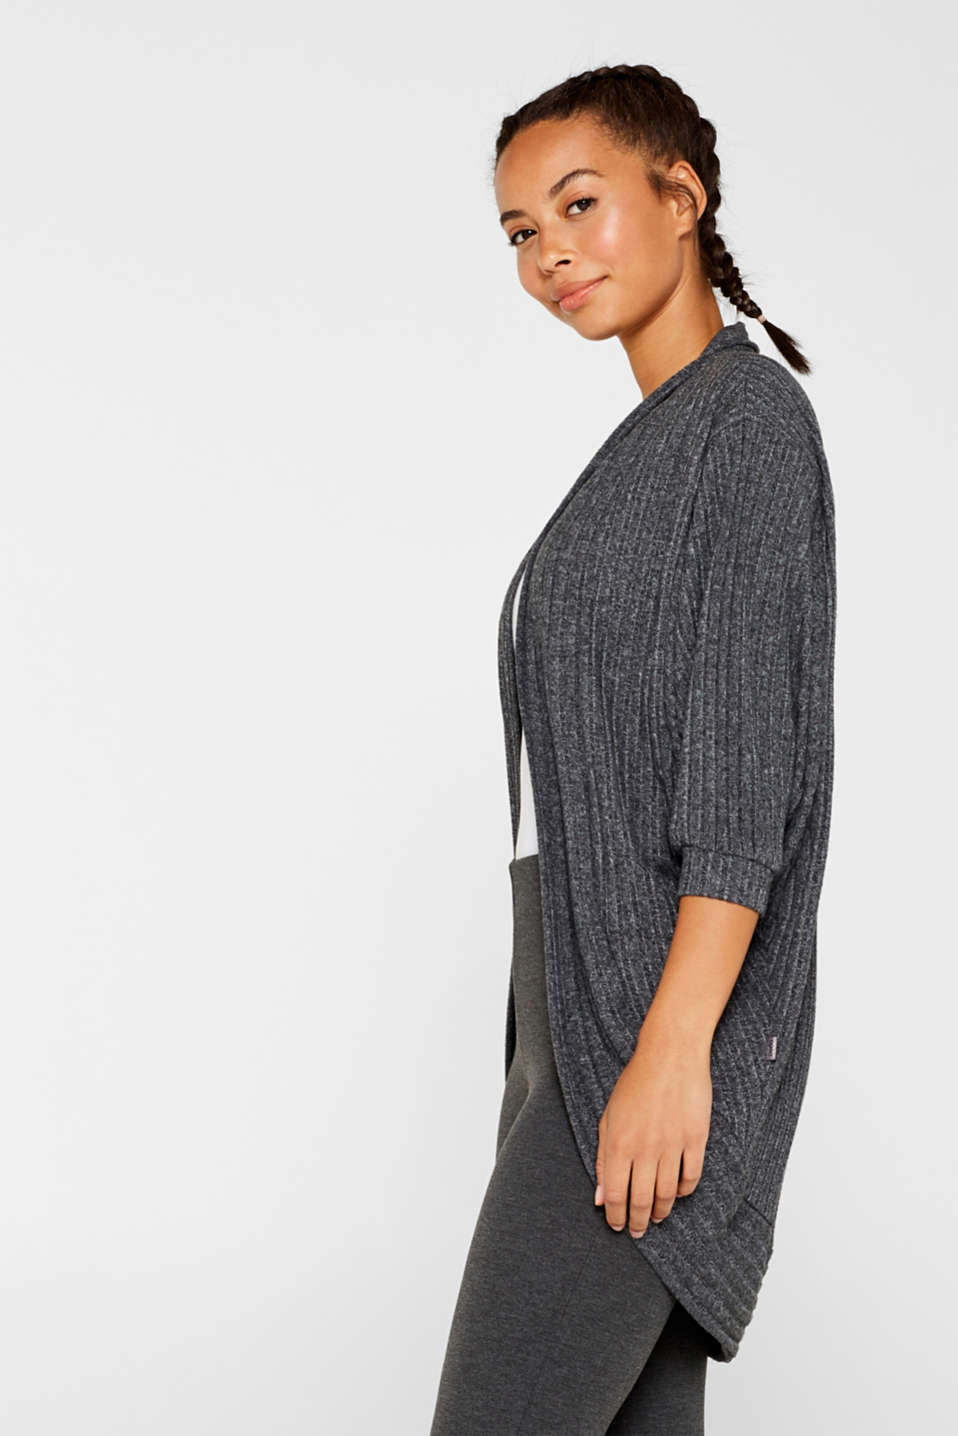 Ribbed stretch jersey cardigan, recycled